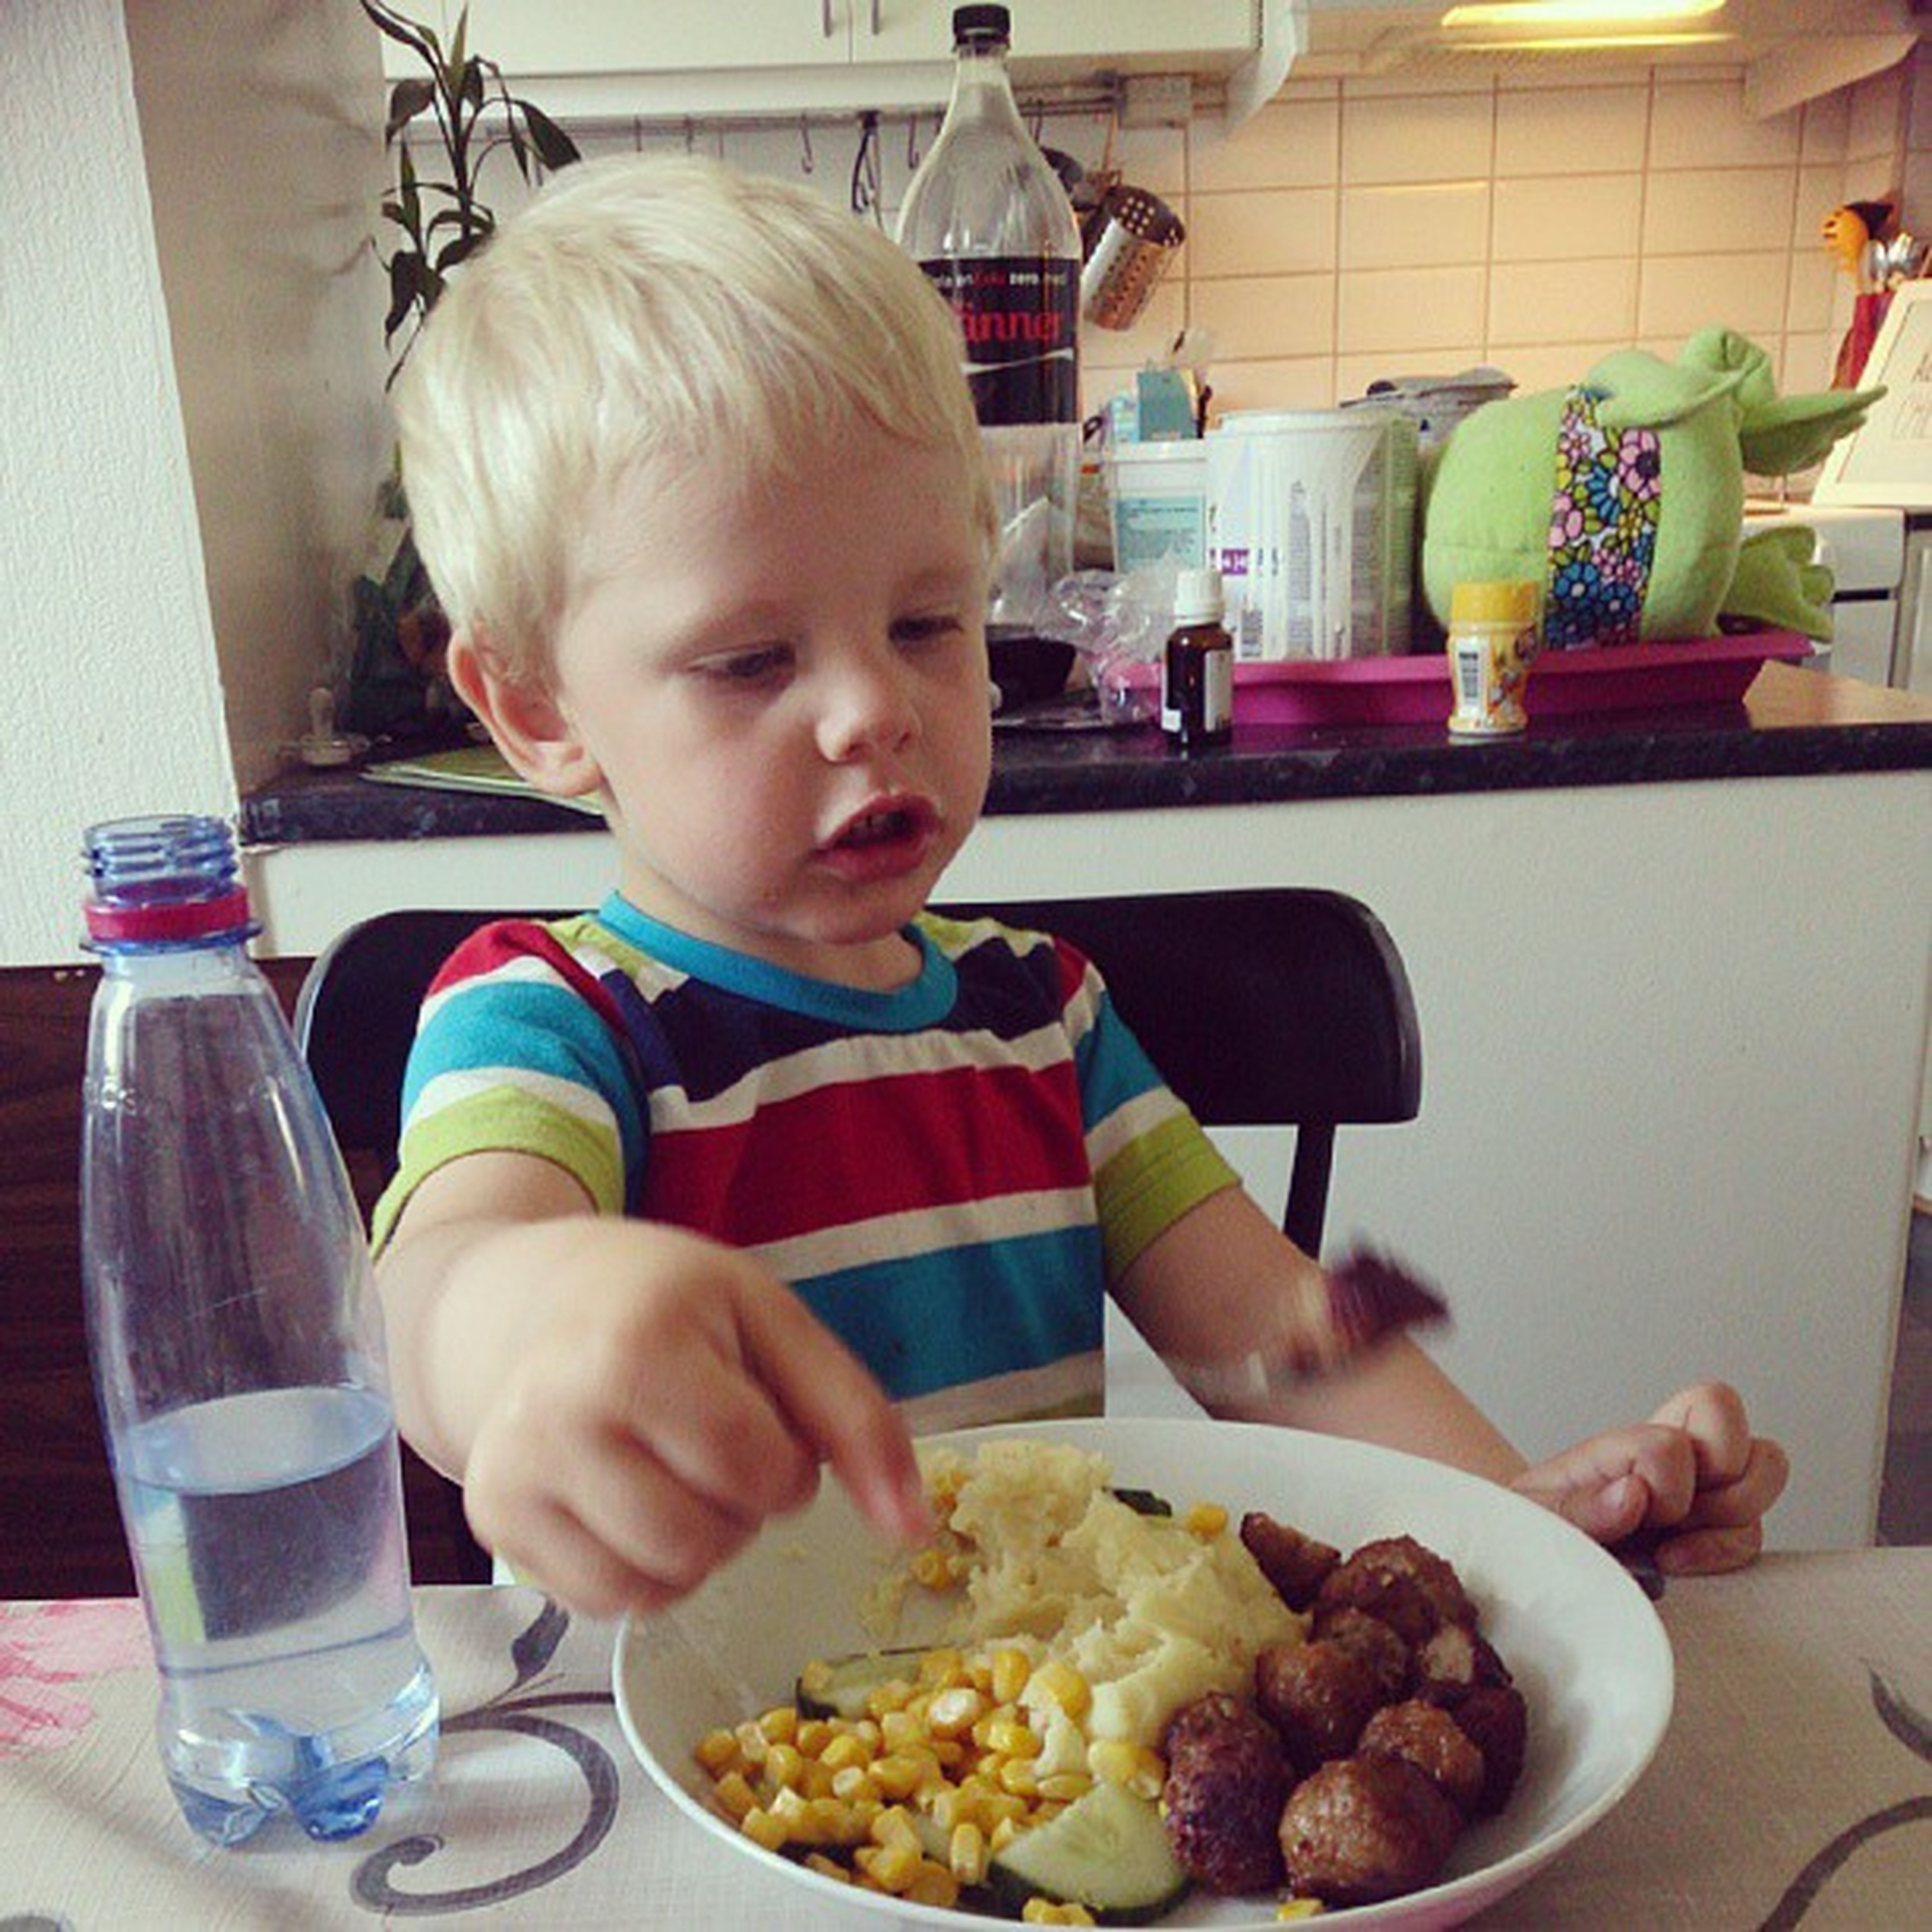 food and drink, indoors, food, freshness, childhood, holding, sweet food, elementary age, indulgence, eating, ready-to-eat, boys, lifestyles, cute, unhealthy eating, person, leisure activity, drink